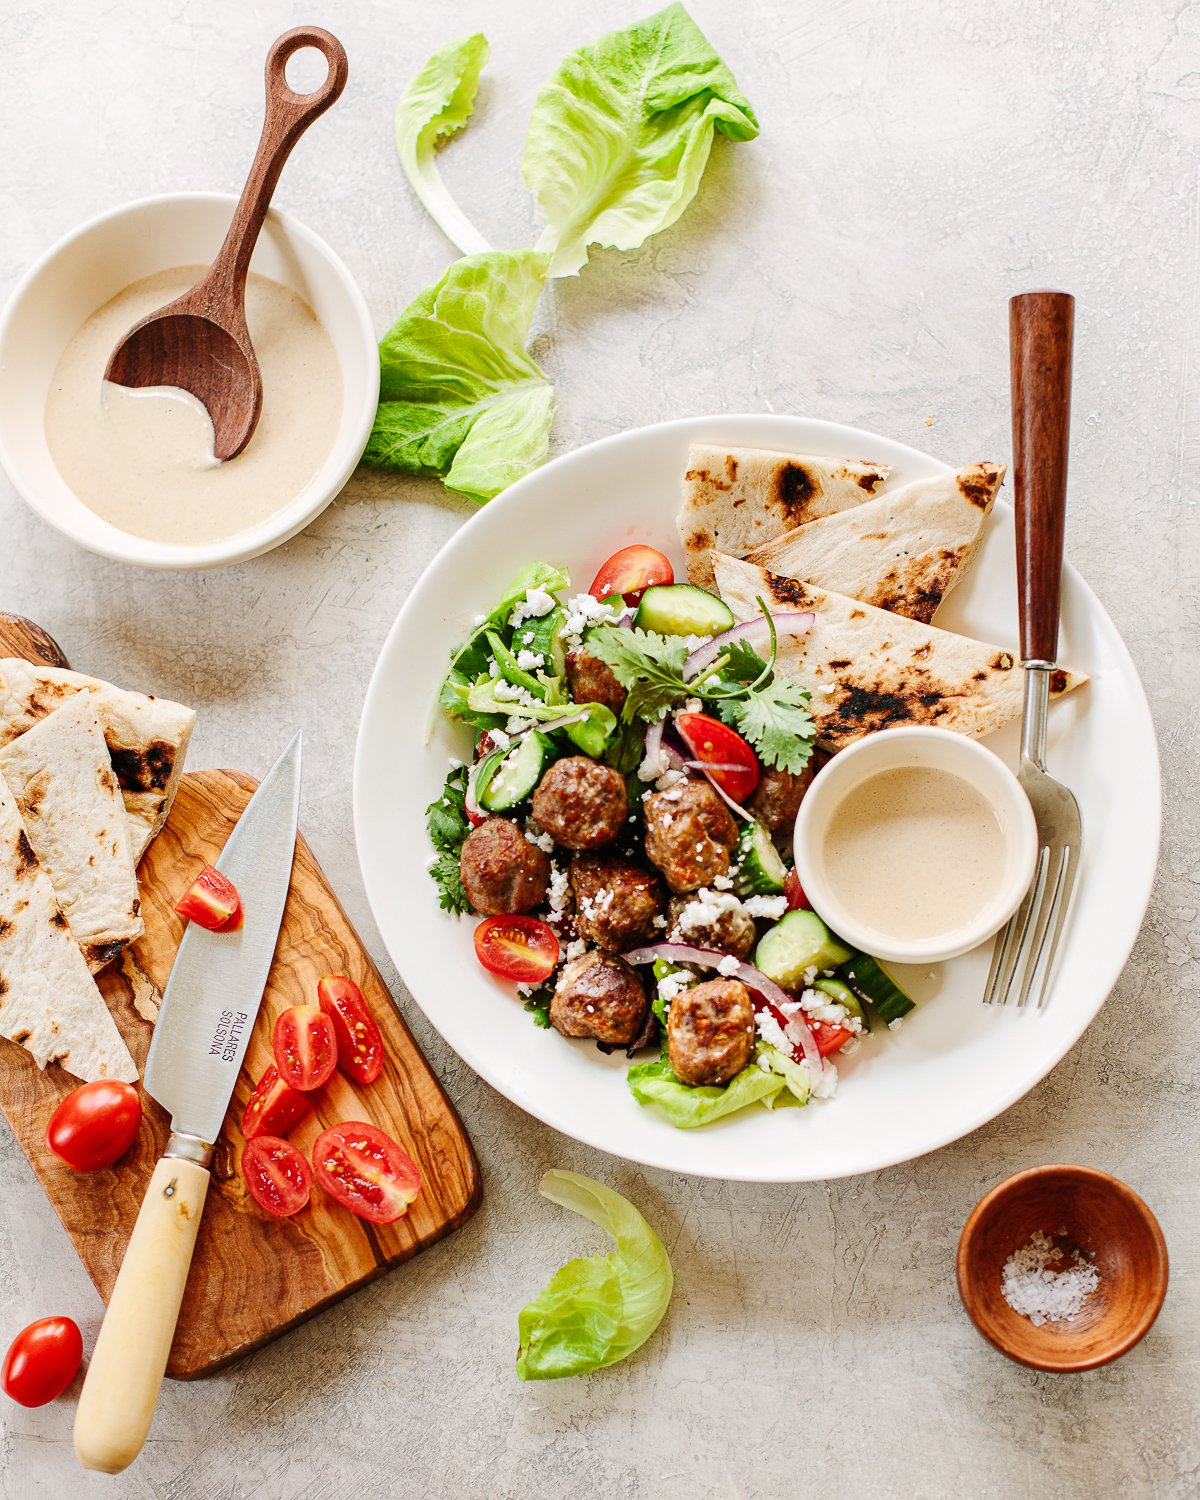 Chicken Gyro Meatballs on a plate with cucumber, tomato, tahini sauce and pita bread.